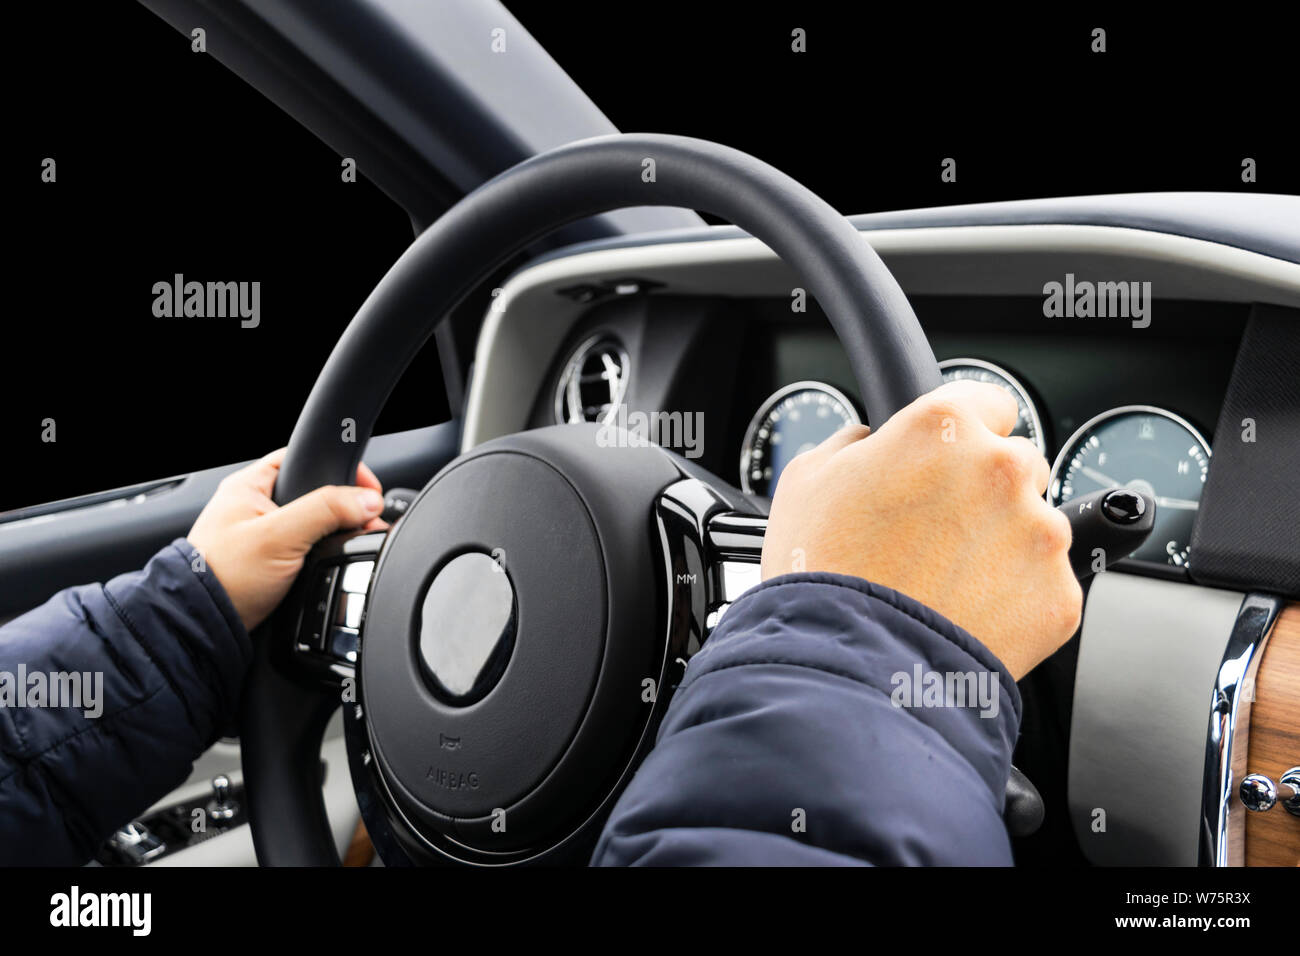 Male hands holding car steering wheel. Hands on steering wheel of a car driving. Young Man driving a car inside cabin. Multimedia system. Man Travelin Stock Photo